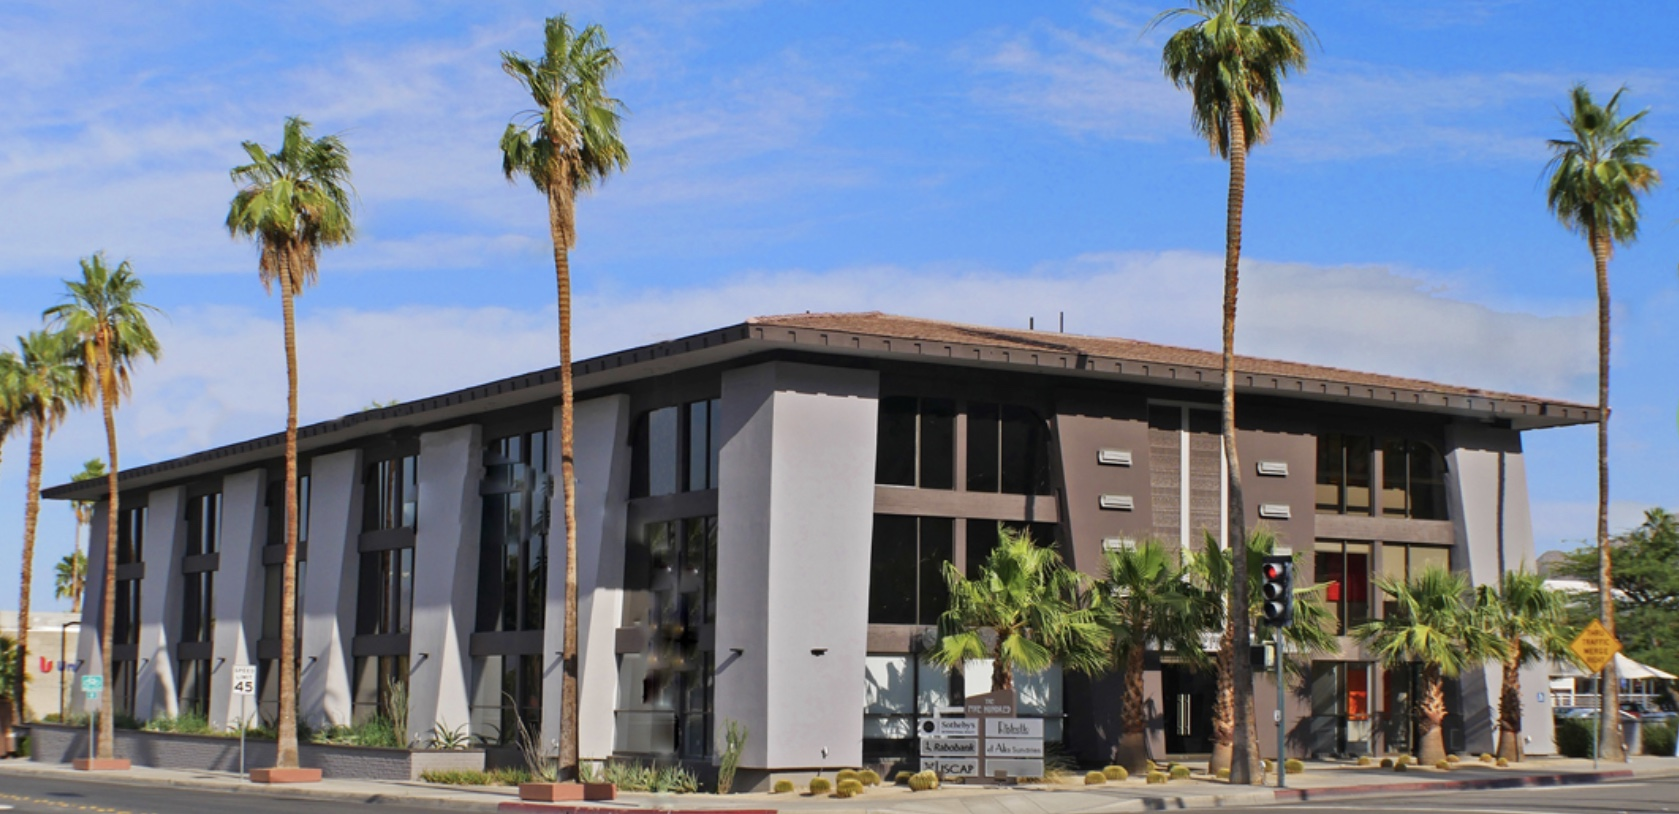 The Five Hundred - 500 S. Palm Canyon Dr. Palm Springs, Ca. 92264